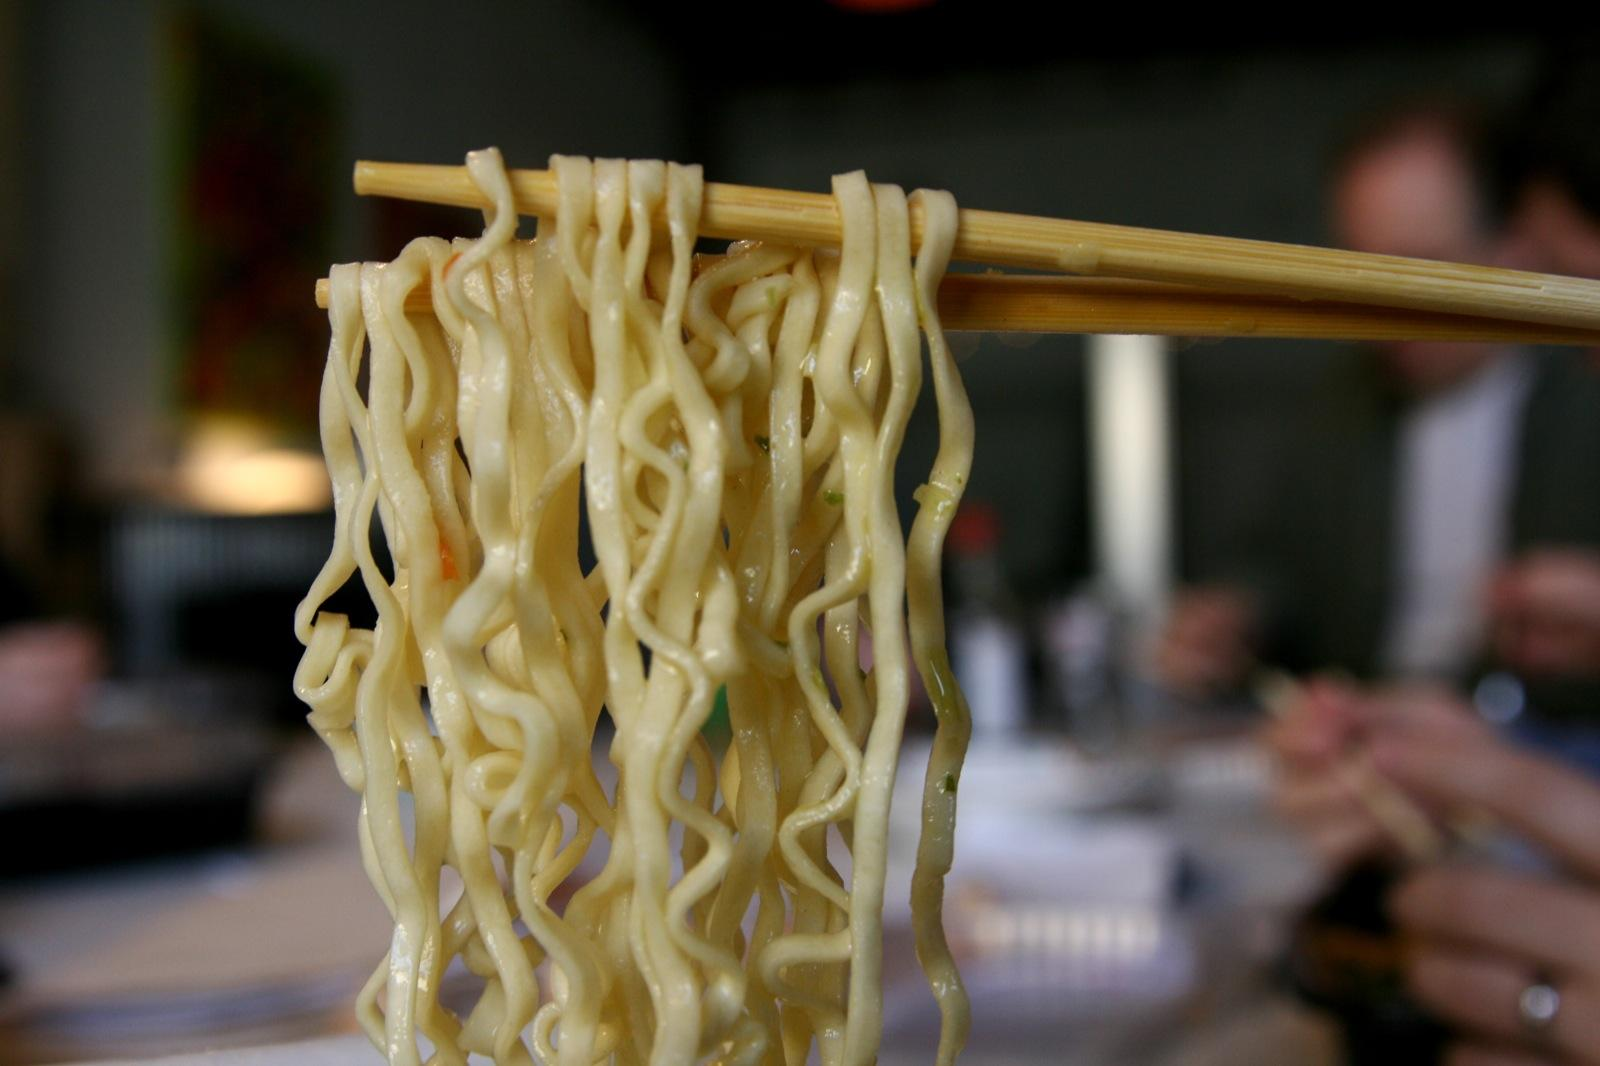 st. louis' 6th ramen-focused restaurant to open in early 2017